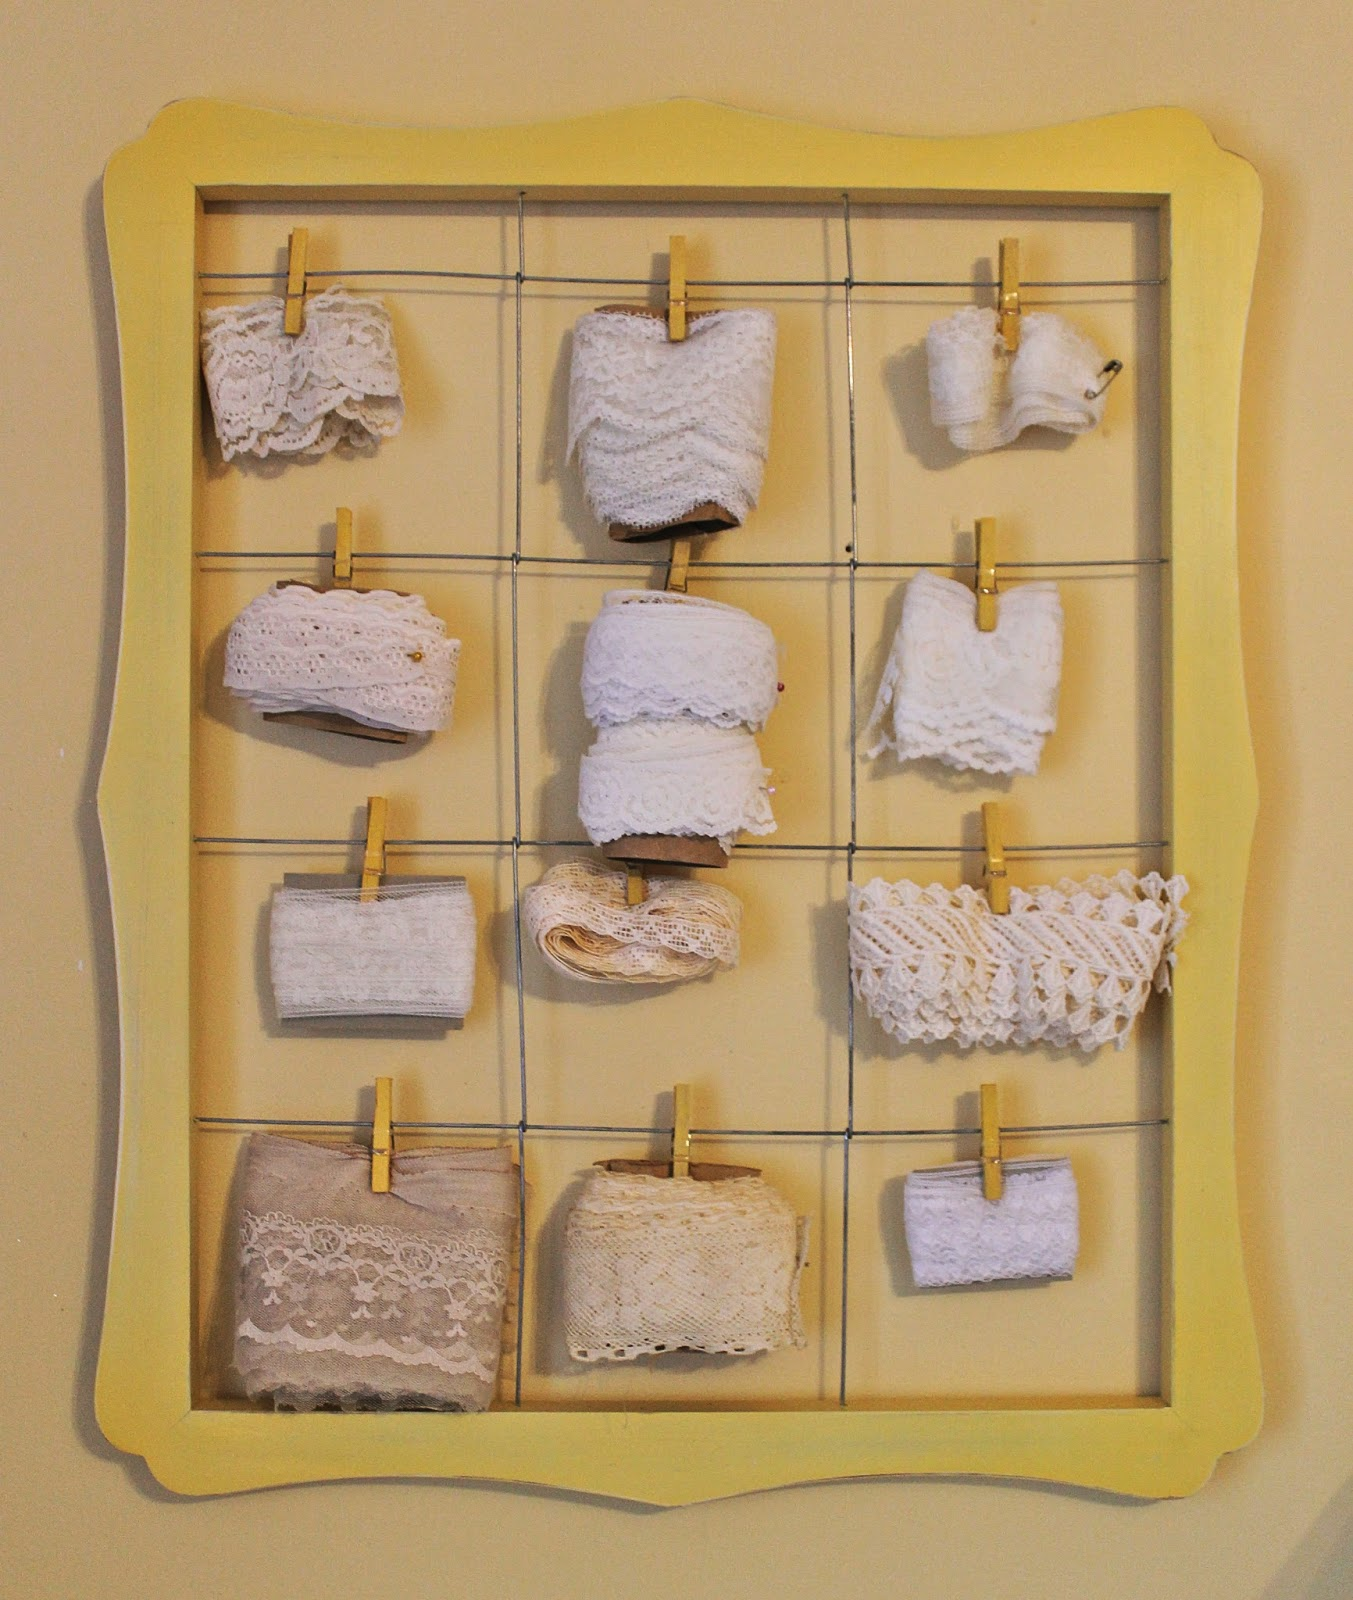 Pretti Mini Blog: 10 Ways to Organize Your Craft Room or Work Space